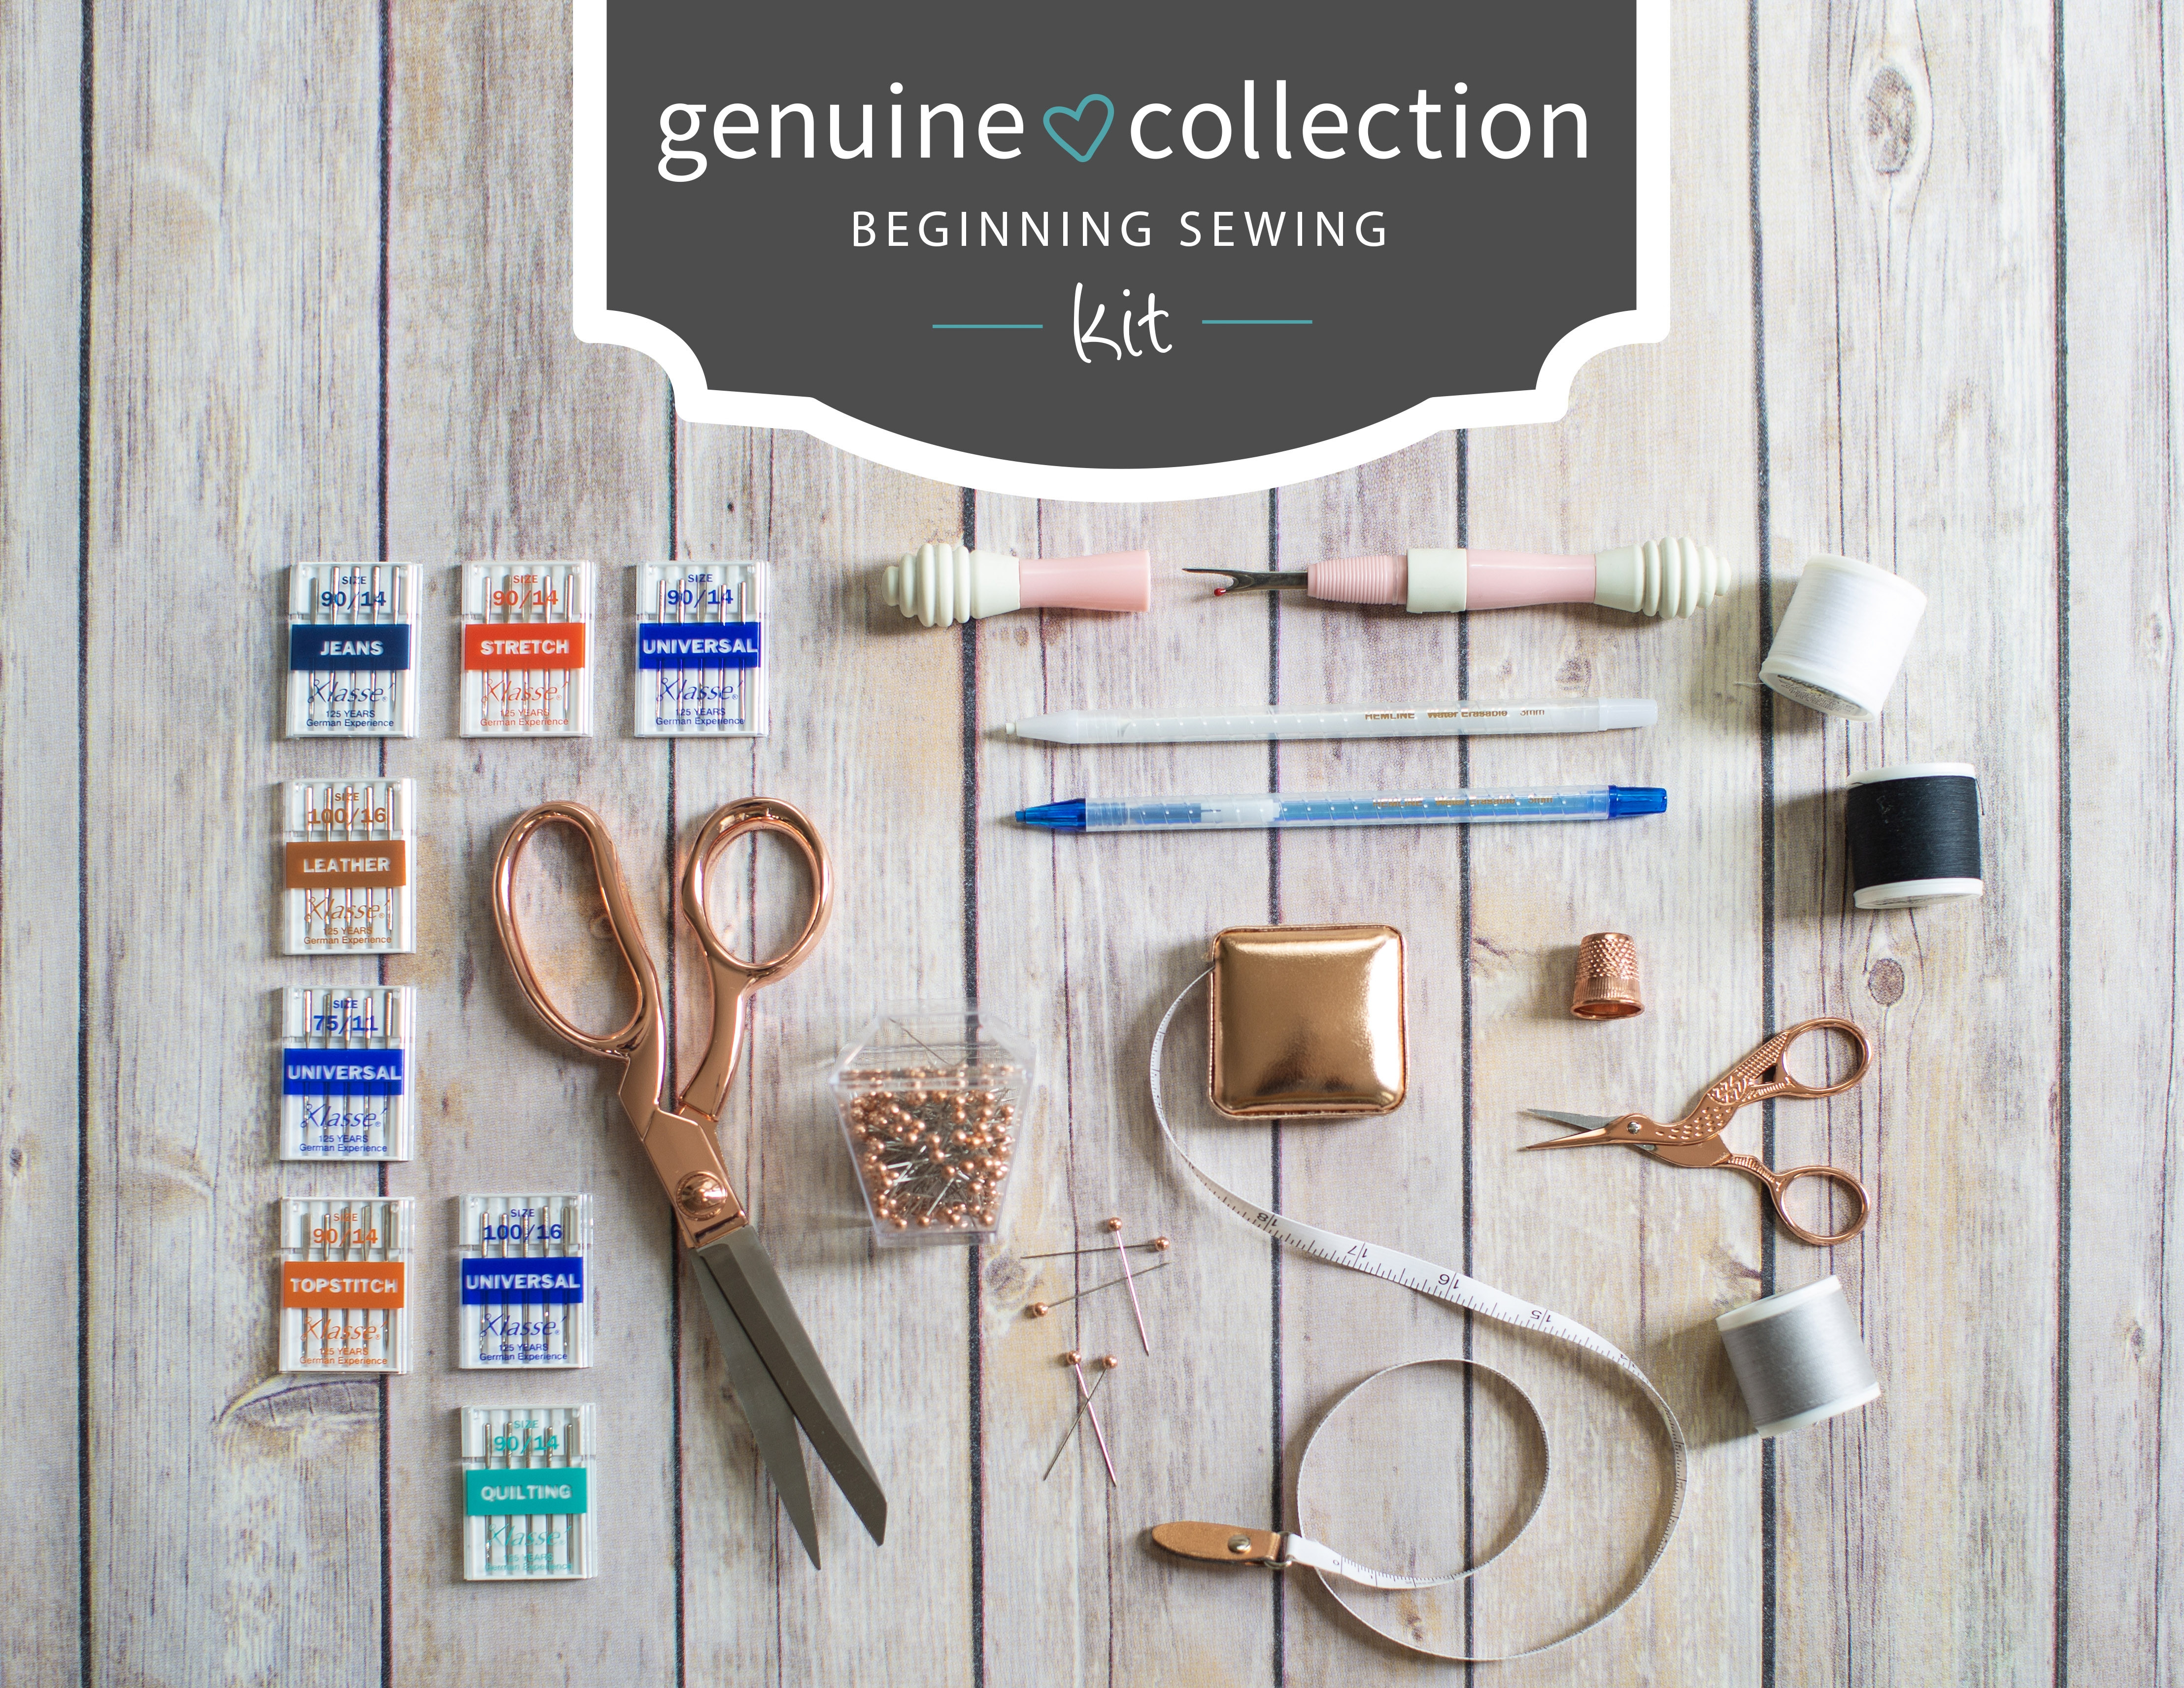 Baby Lock Genuine Collection Sewing Kit - BLGCSK - Baby Lock